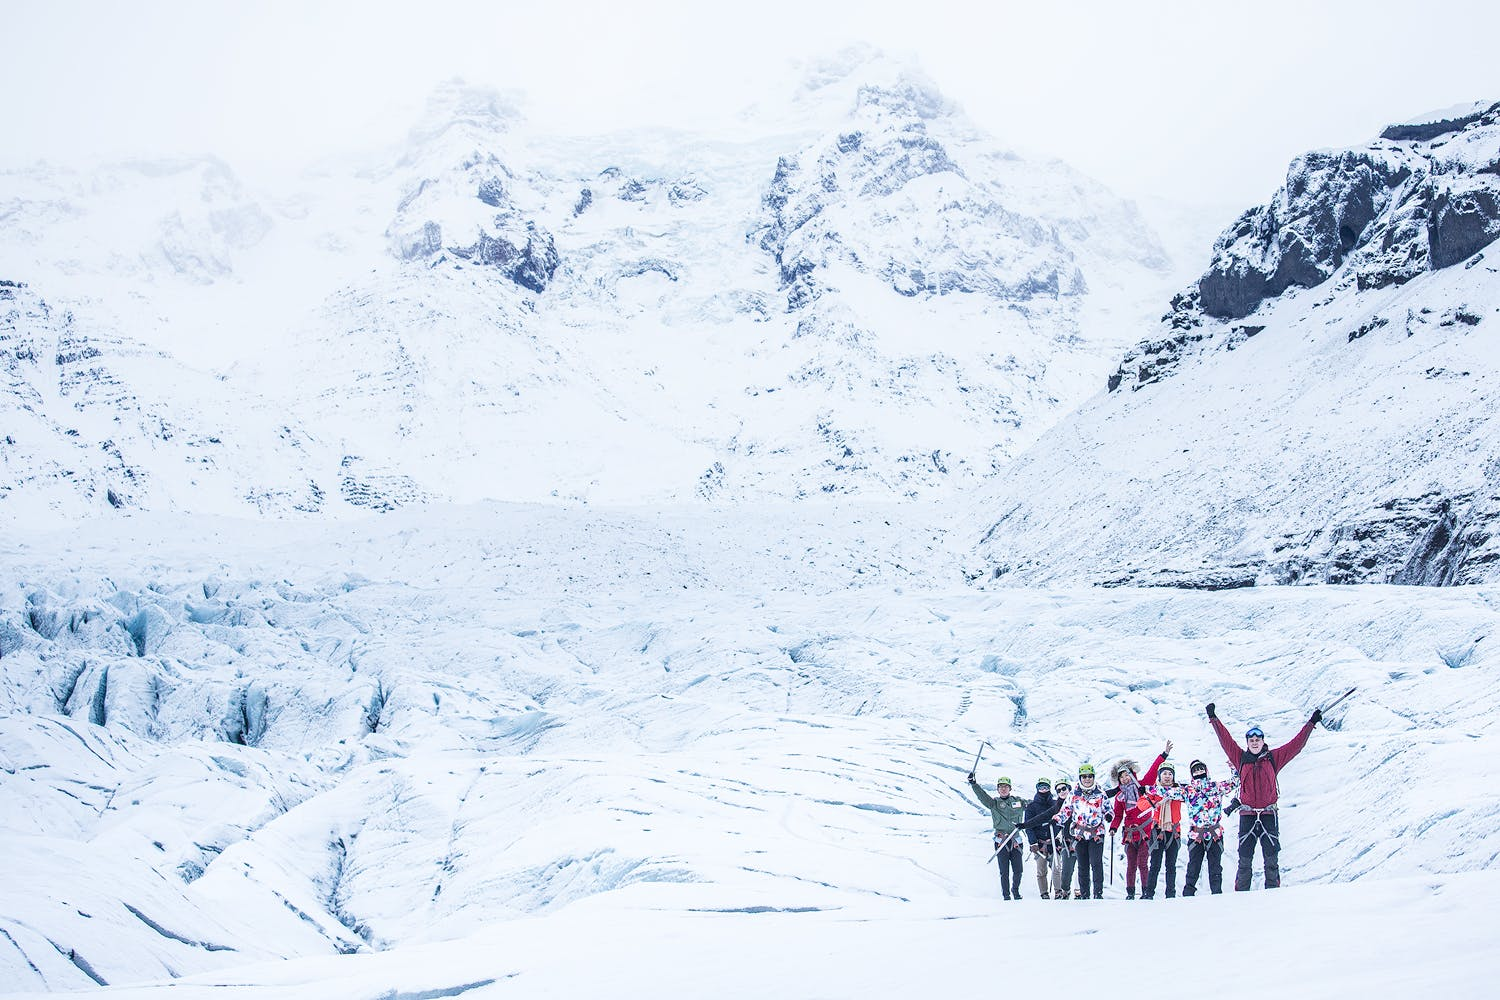 3 in 1 Bundled Discount Activity Tours with 2 Glacier Hikes & a Blue Ice Cave in Vatnajokull - day 2